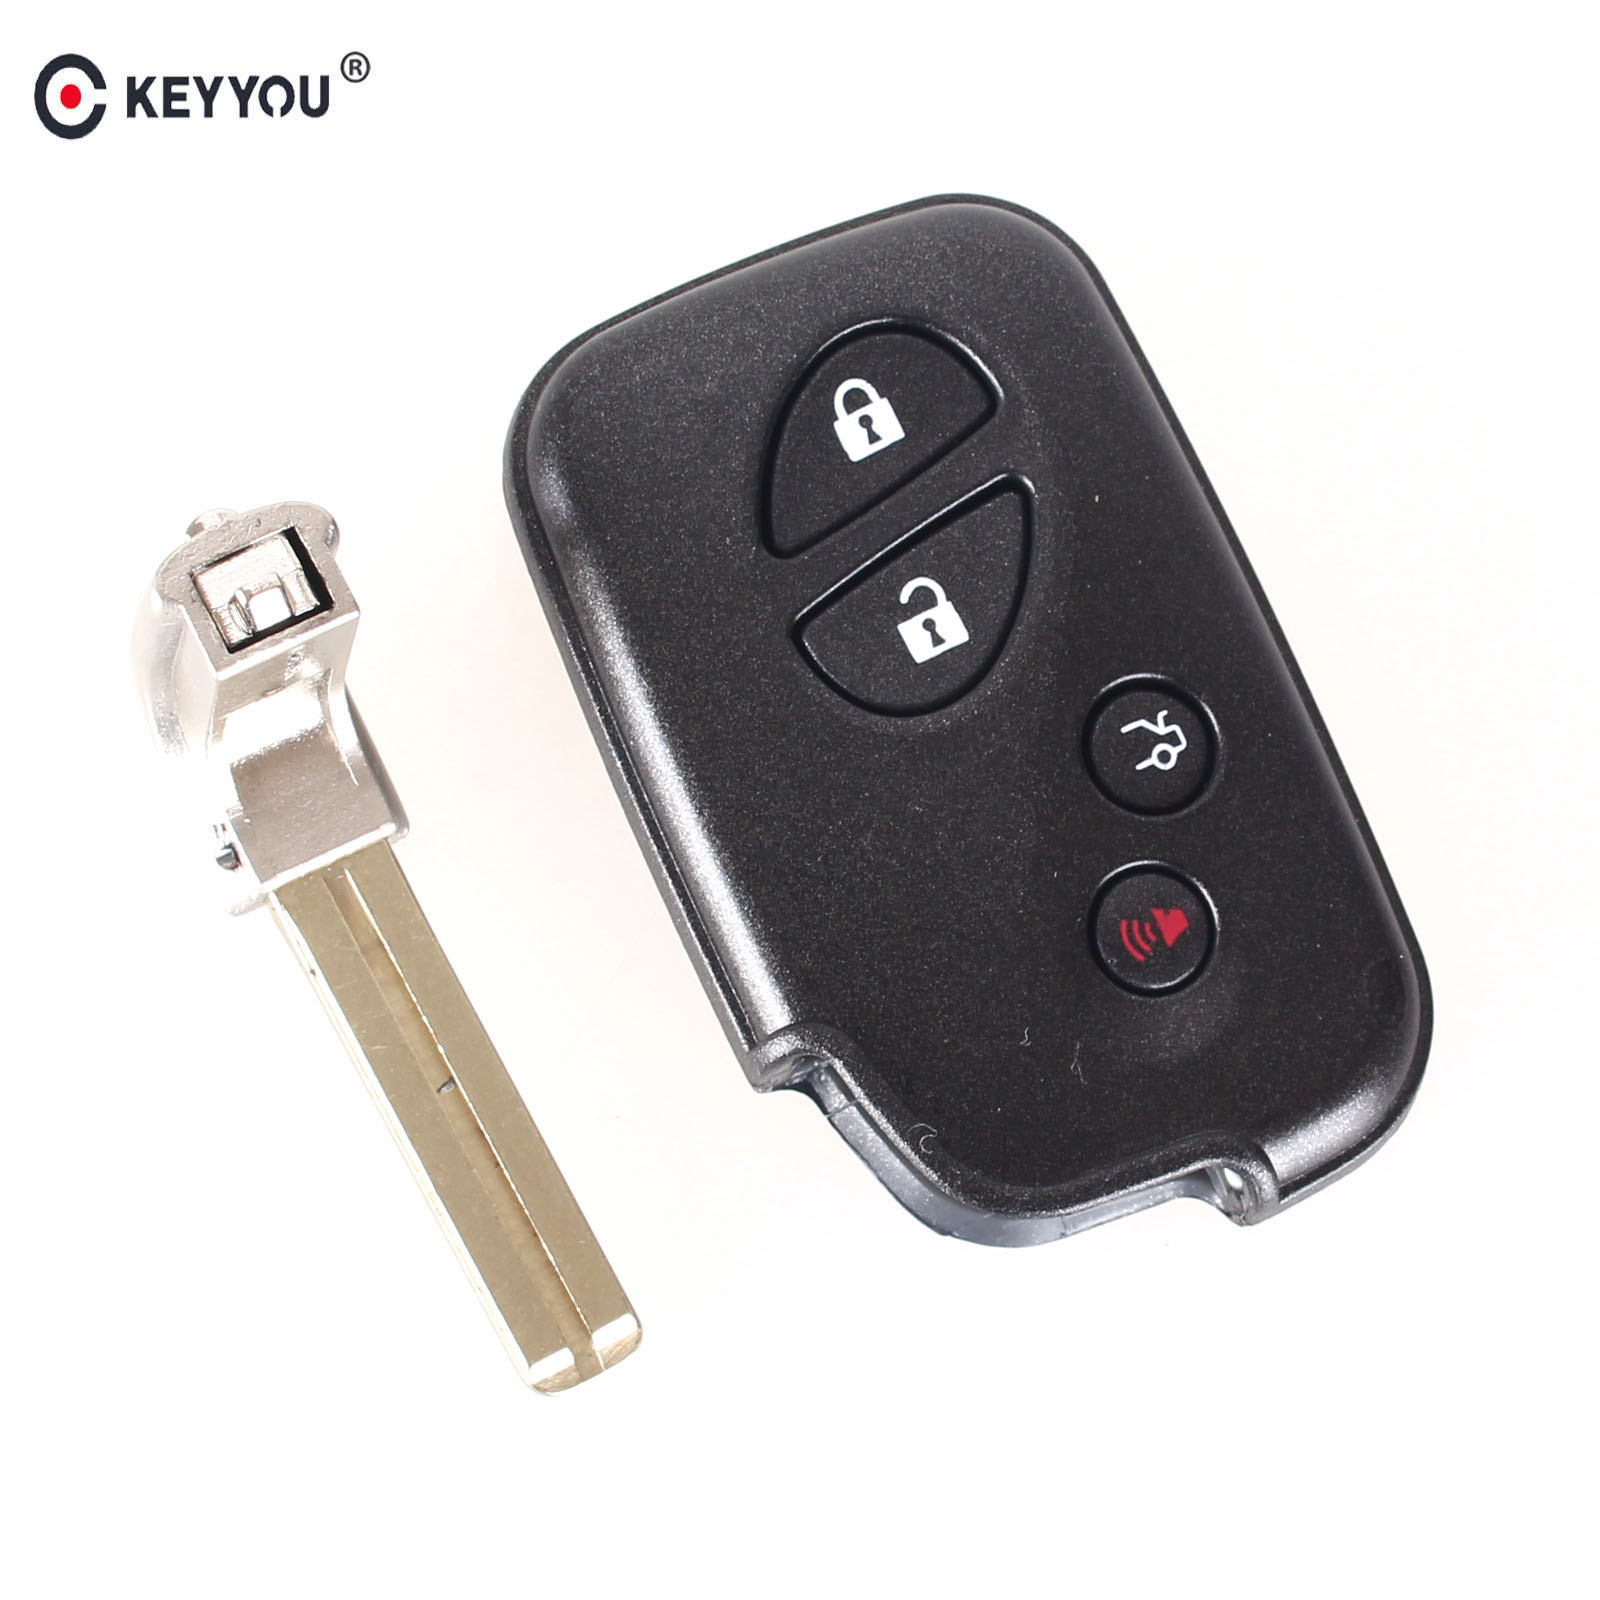 KEYYOU Replacement Shell 4 Buttons Smart Remote Key Fob Case For Lexus GS430 ES350 GS350 LX570 IS350 RX350 IS250 + Blank Key цены